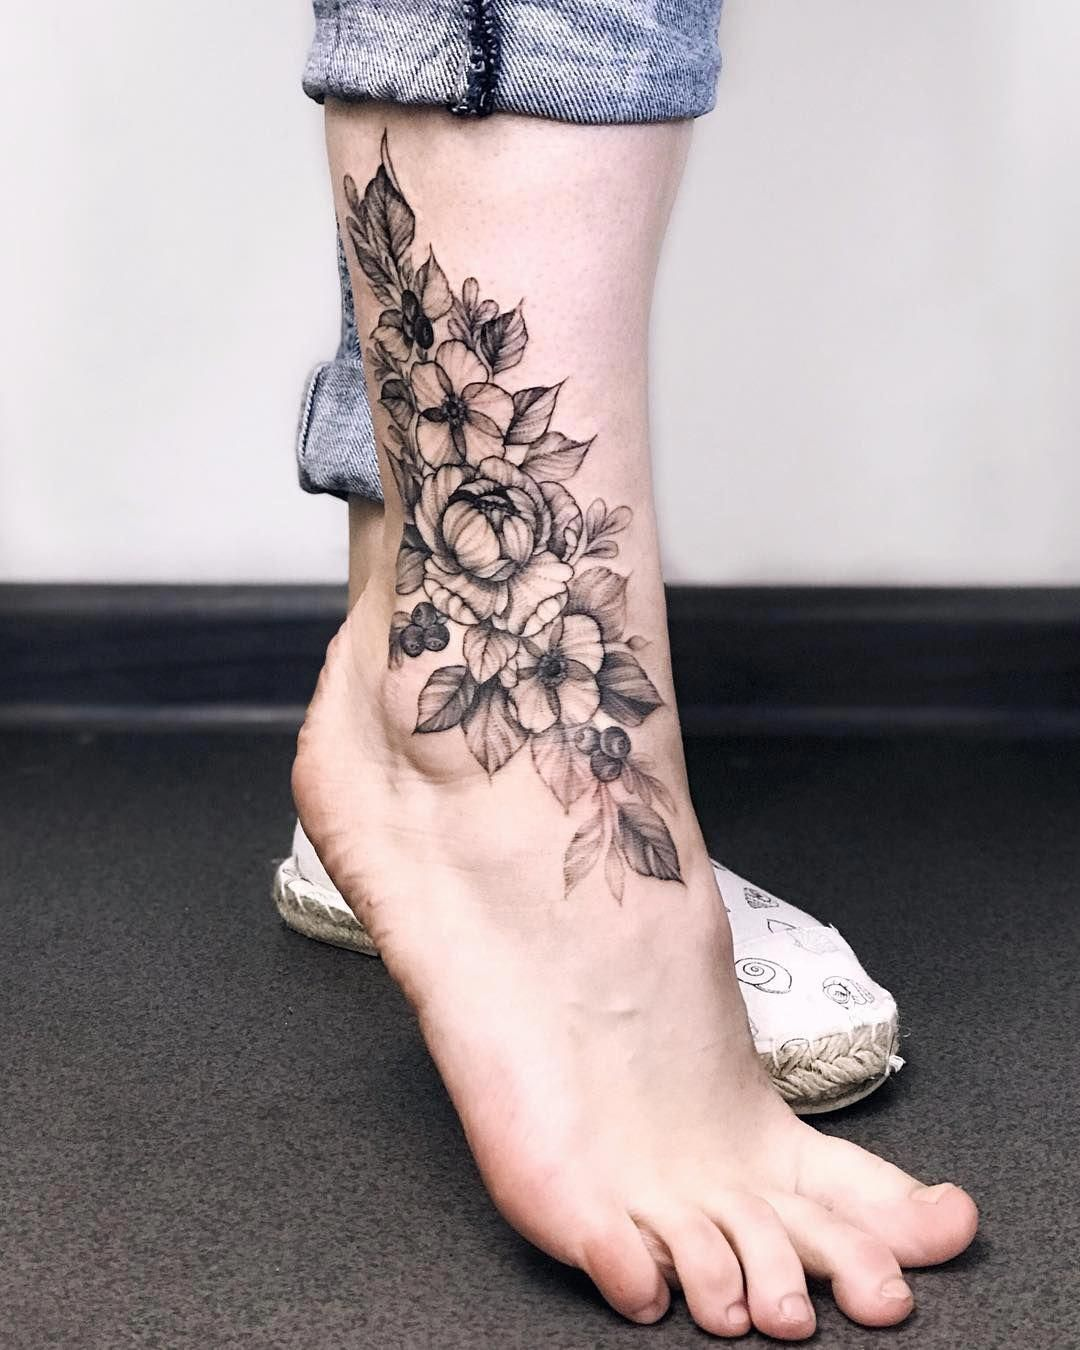 Floral Foot Tattoos : floral, tattoos, Colorful, Tattoos, #Foottattoos, Women,, Floral, Tattoo,, Ankle, Tattoo